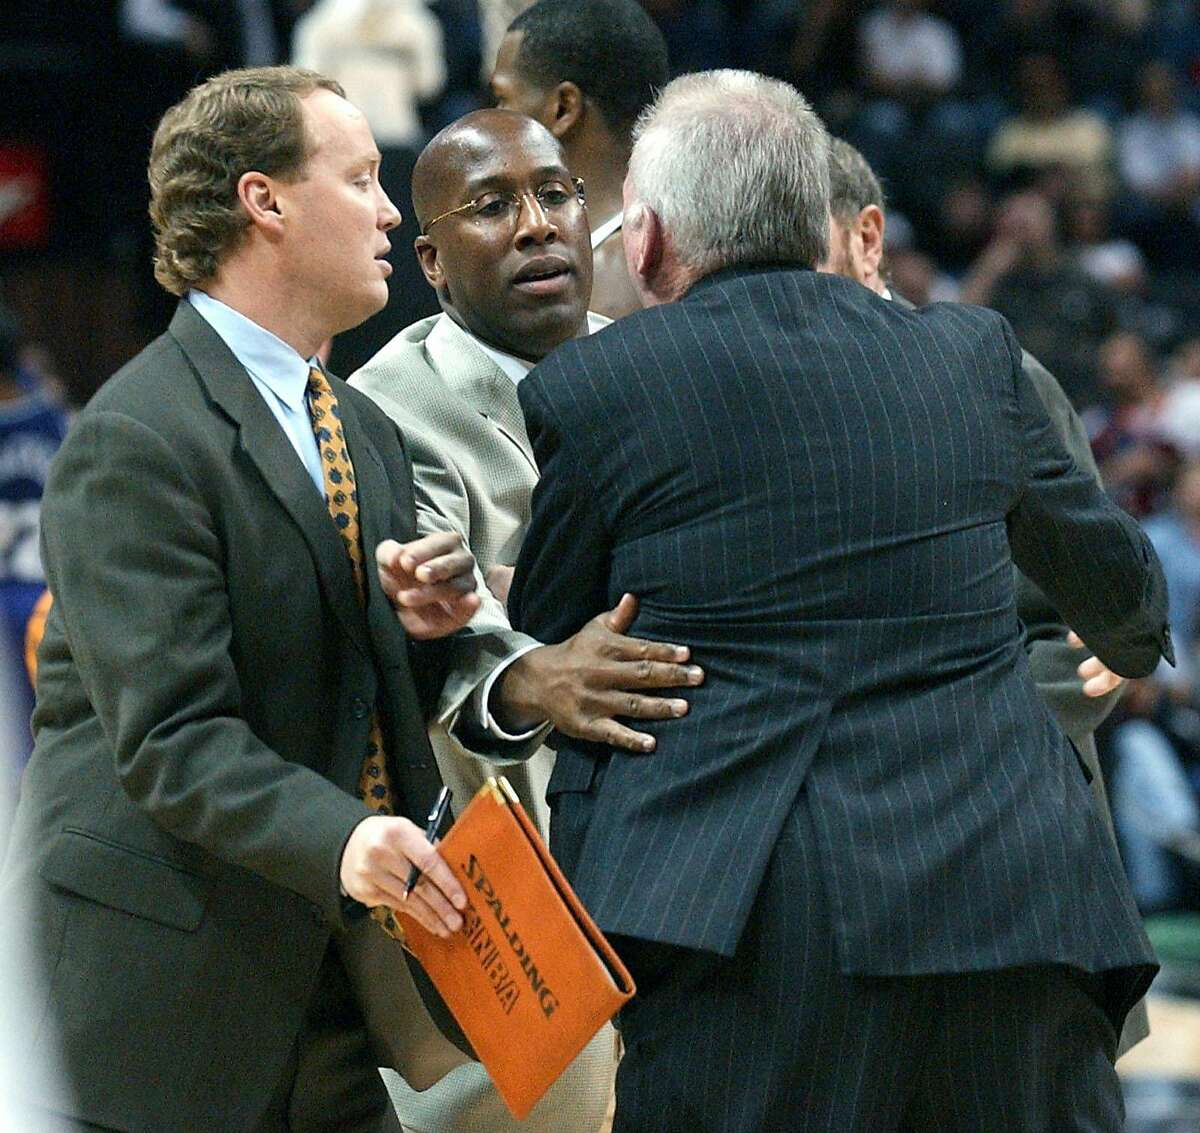 Coach Gregg Popovich (back towards camera) is held back by coaching staff (L-R) Mike Budenholzer, Mike Brown and P.J. Carlesimo, from going towrds the referee that ejected Popovich from the game during the fist half of the game against Sacramento Sunday night, December 8, 2002, at the SBC Center. GLORIA FERNIZ/STAFF